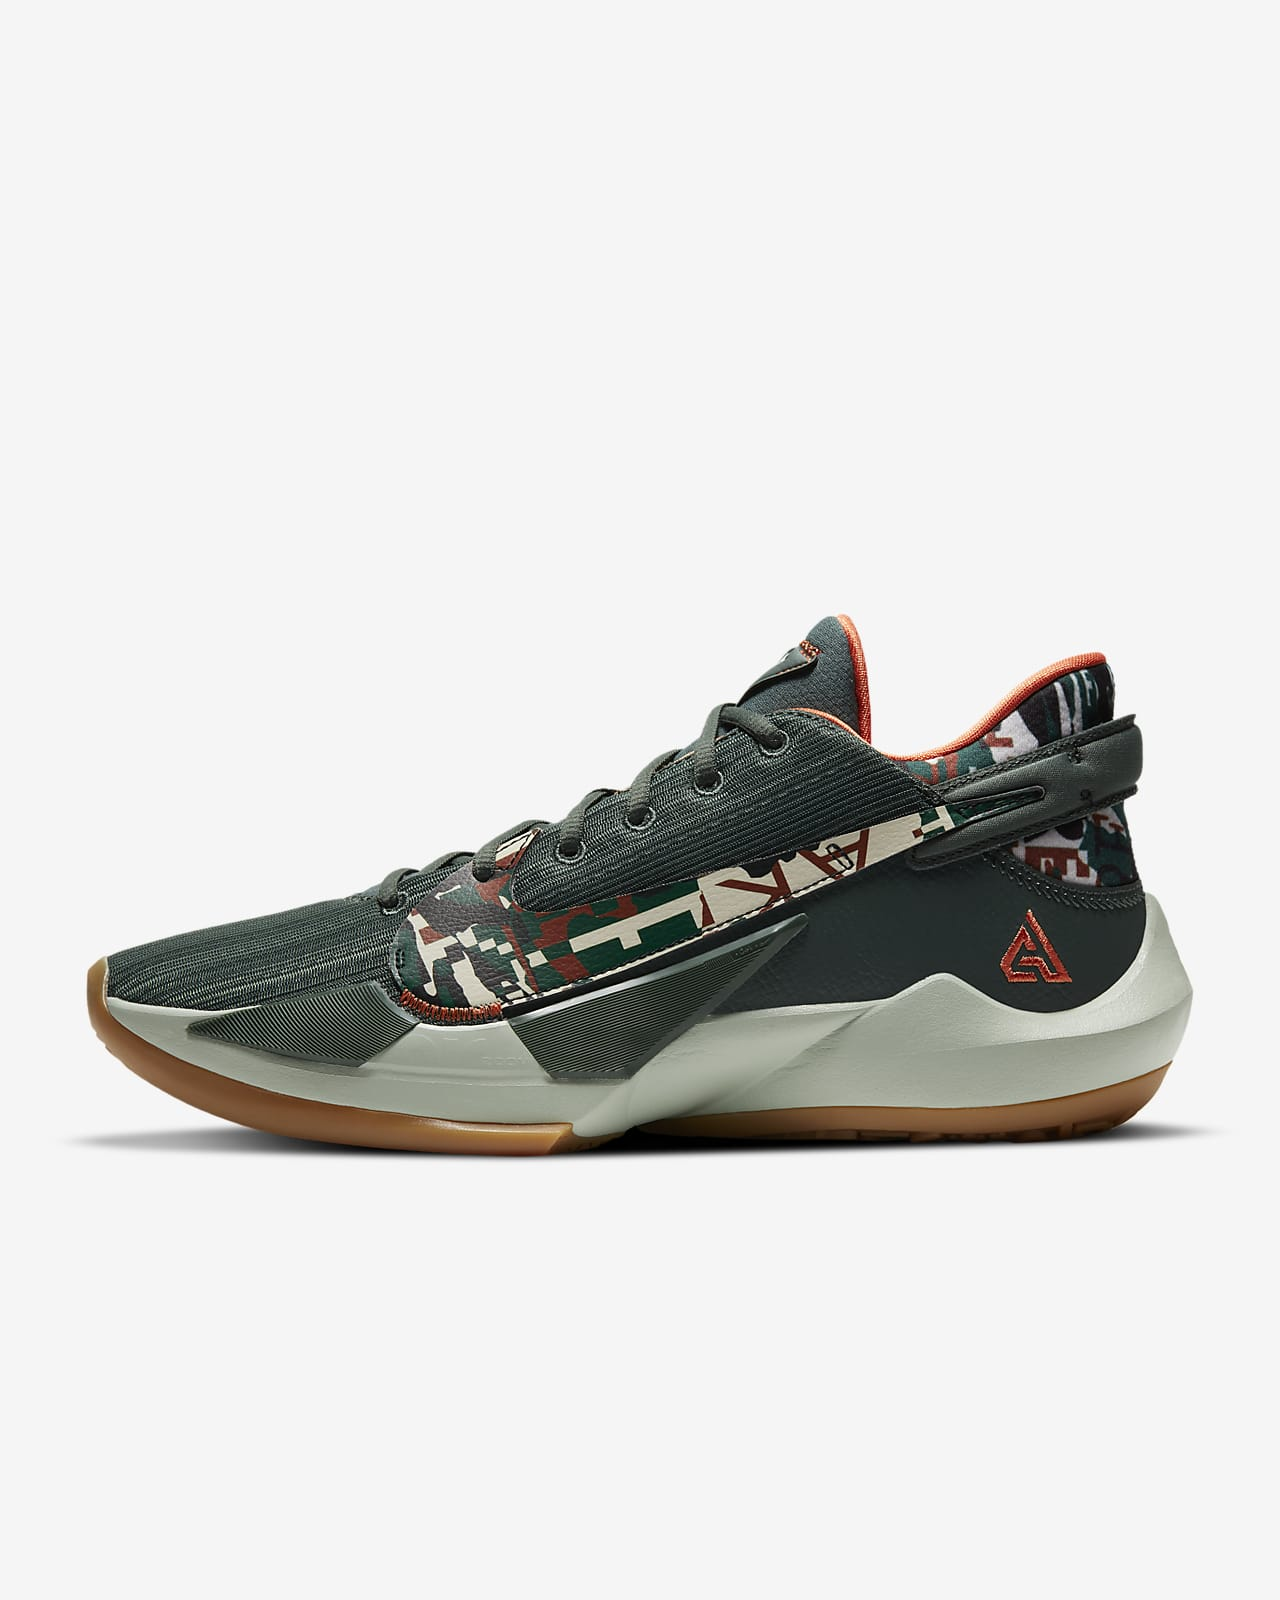 Chaussure de basketball Zoom Freak 2